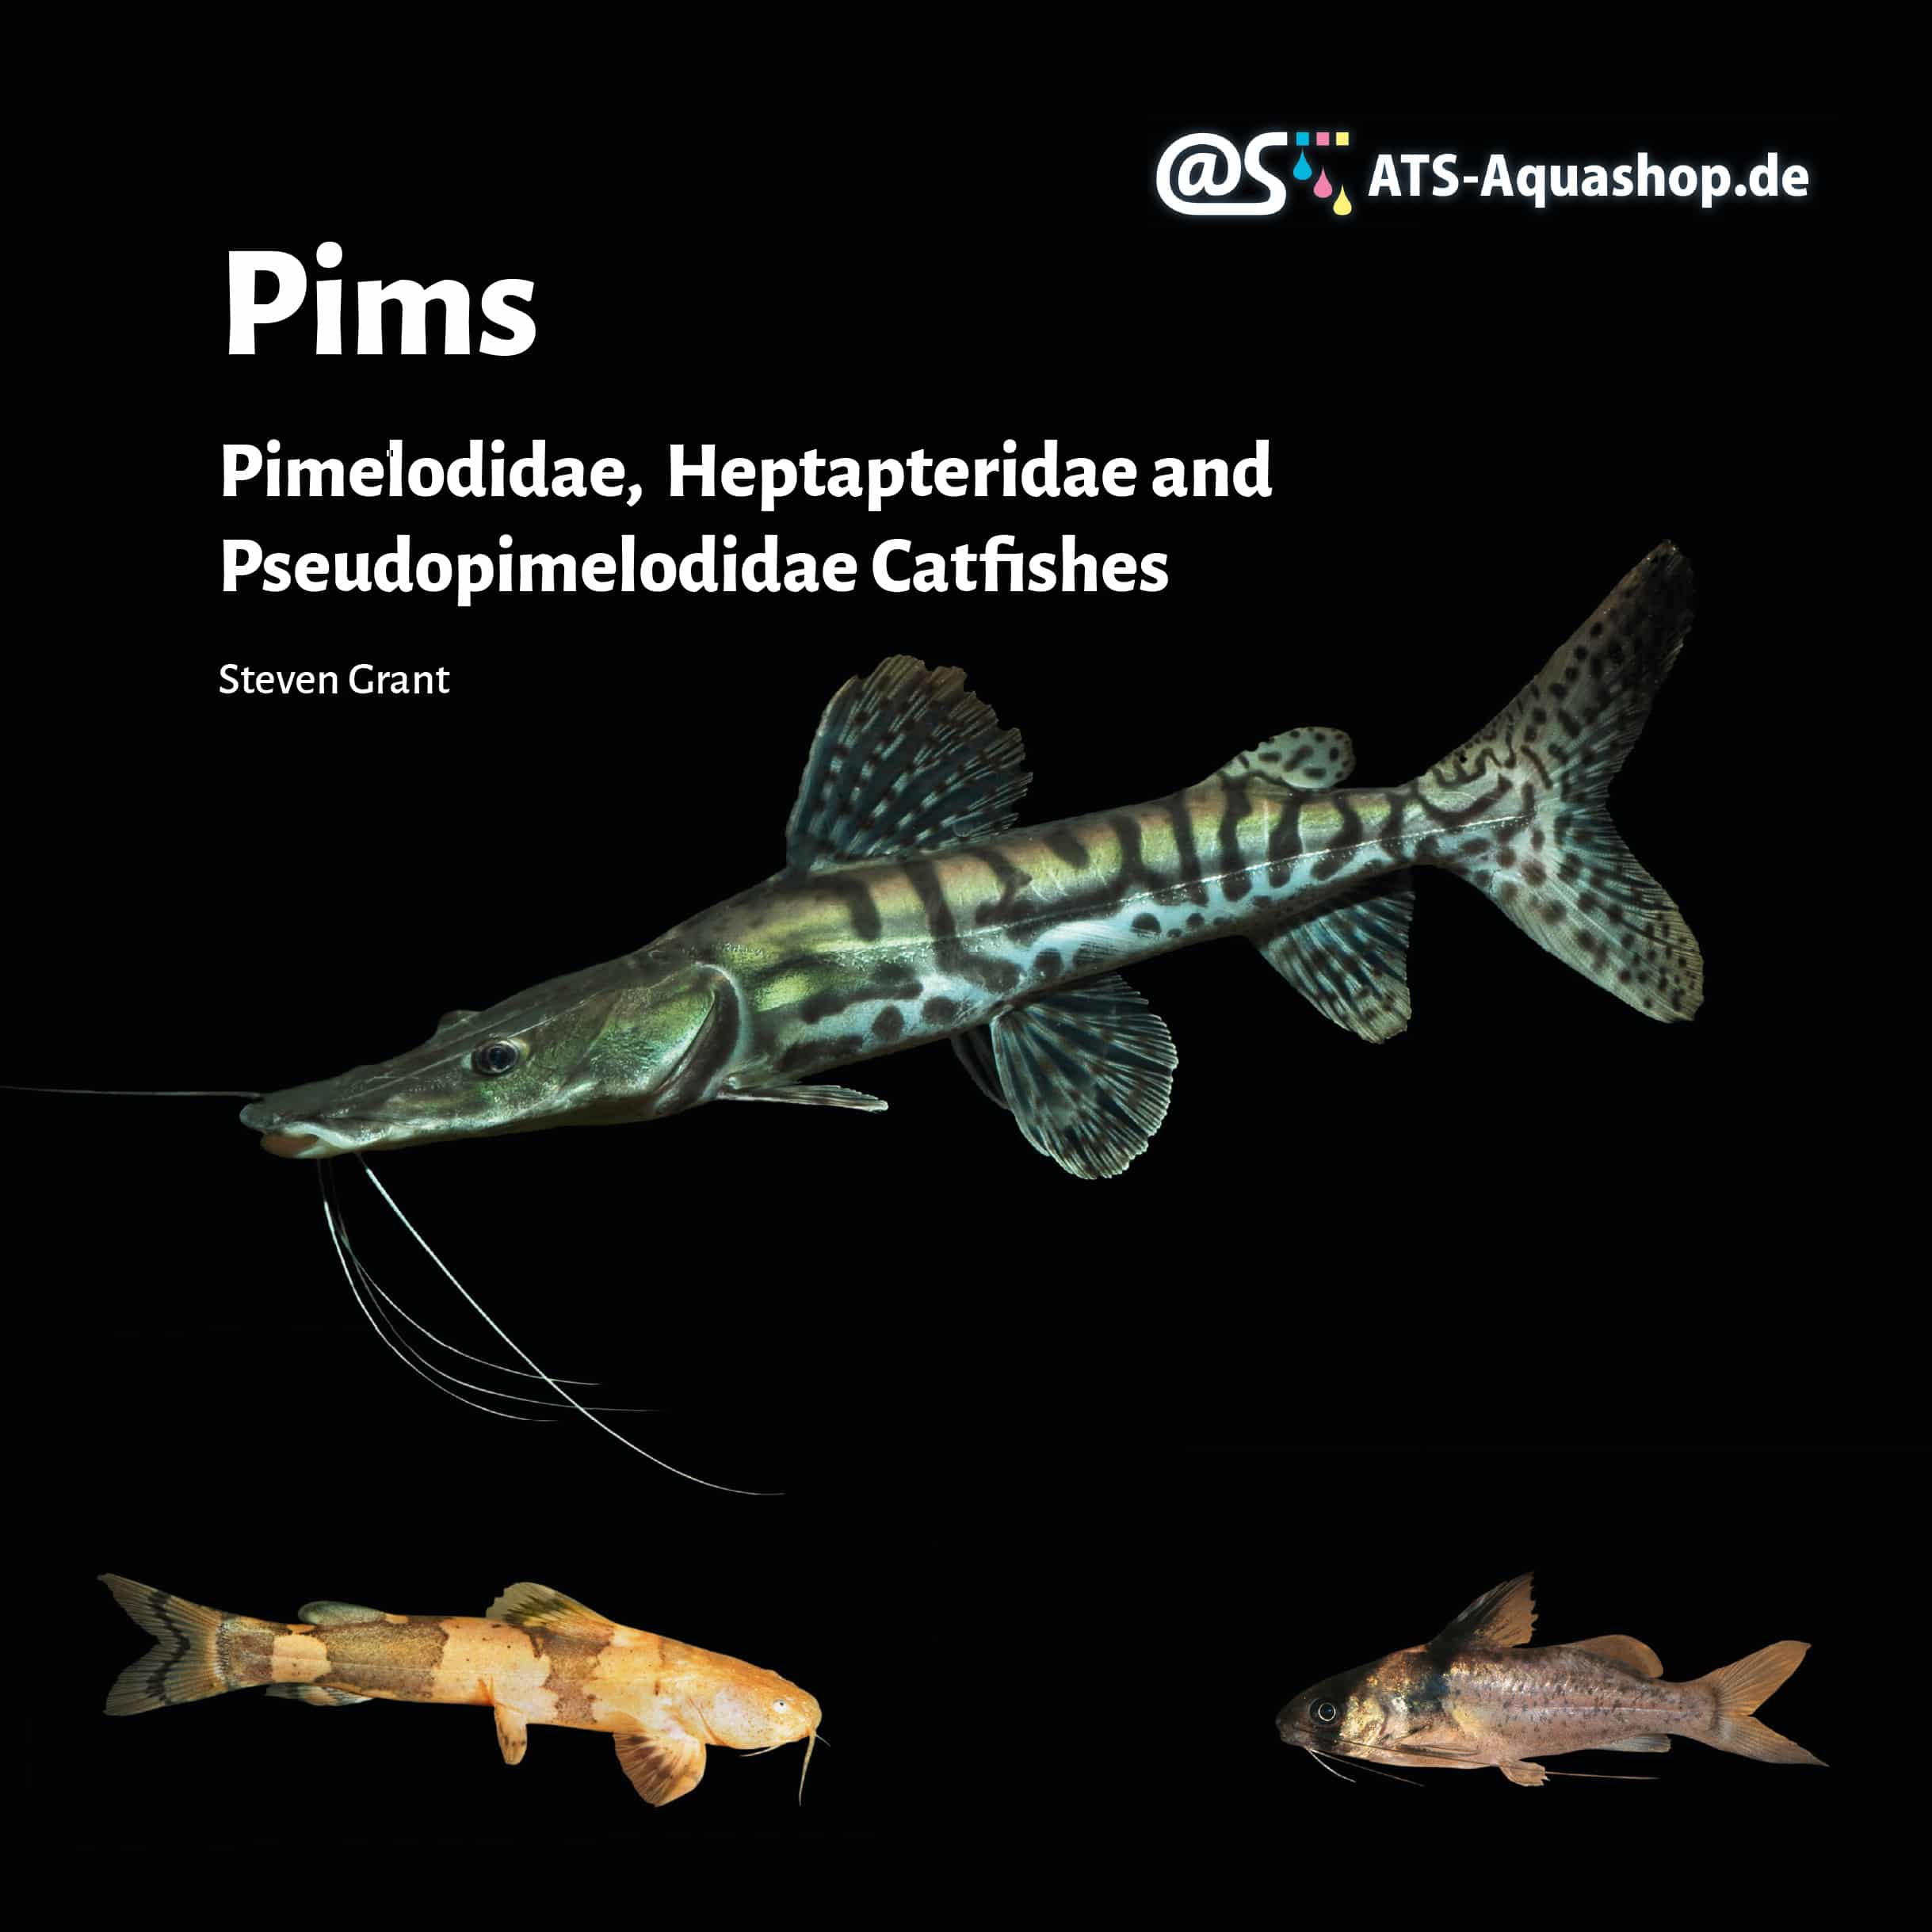 Pims Pimelodidae, Heptapteridae and Pseudopimelodidae Catfishes / Steven Grant